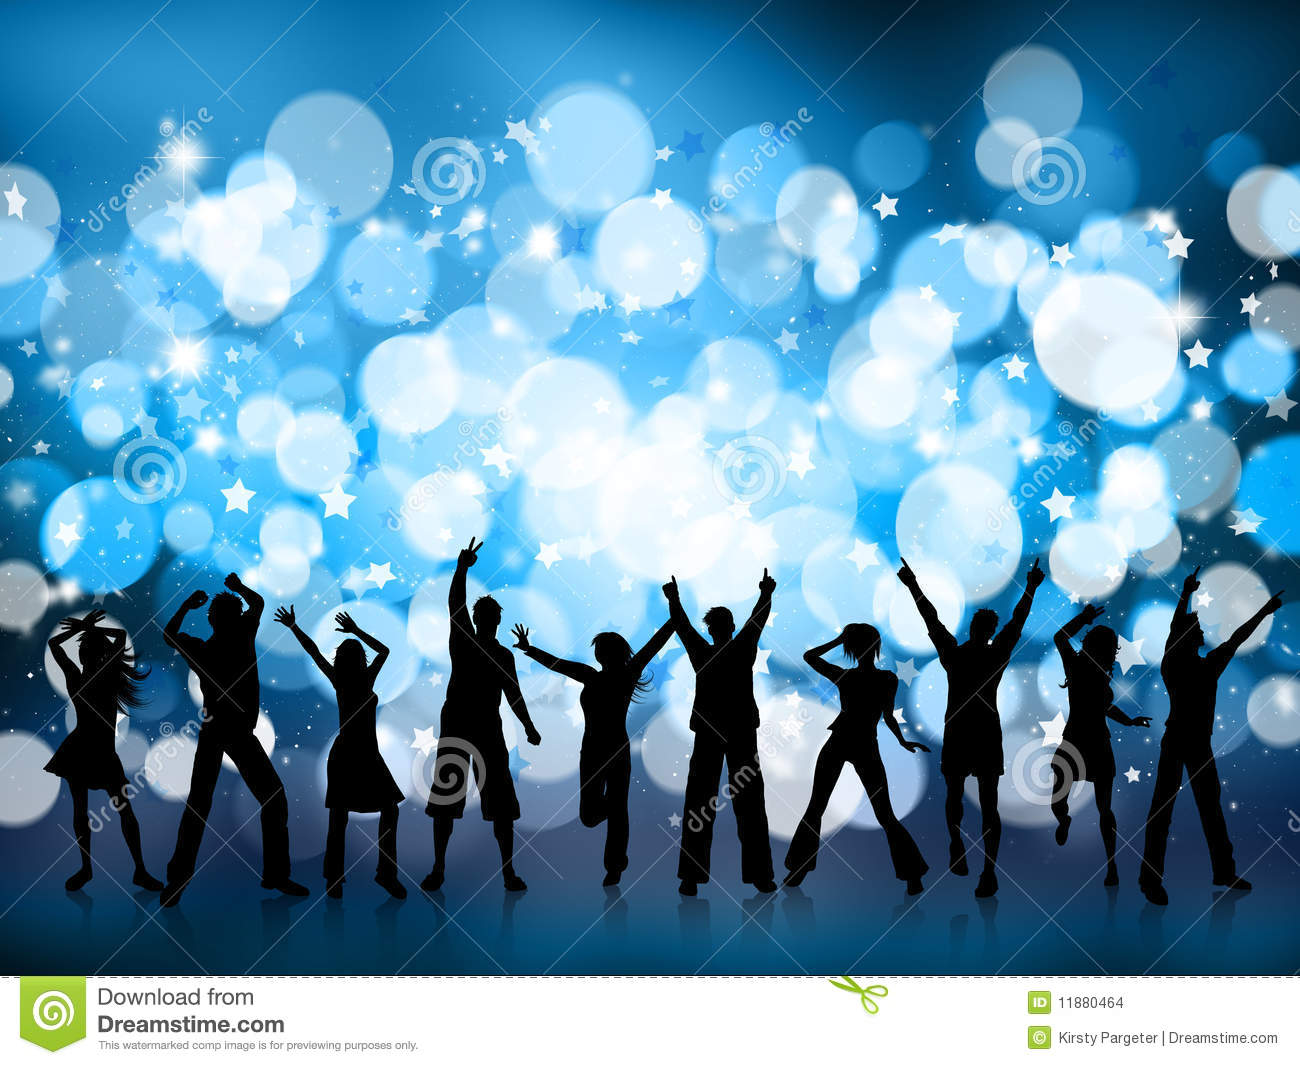 Party Time Stock Images - Image: 11880464